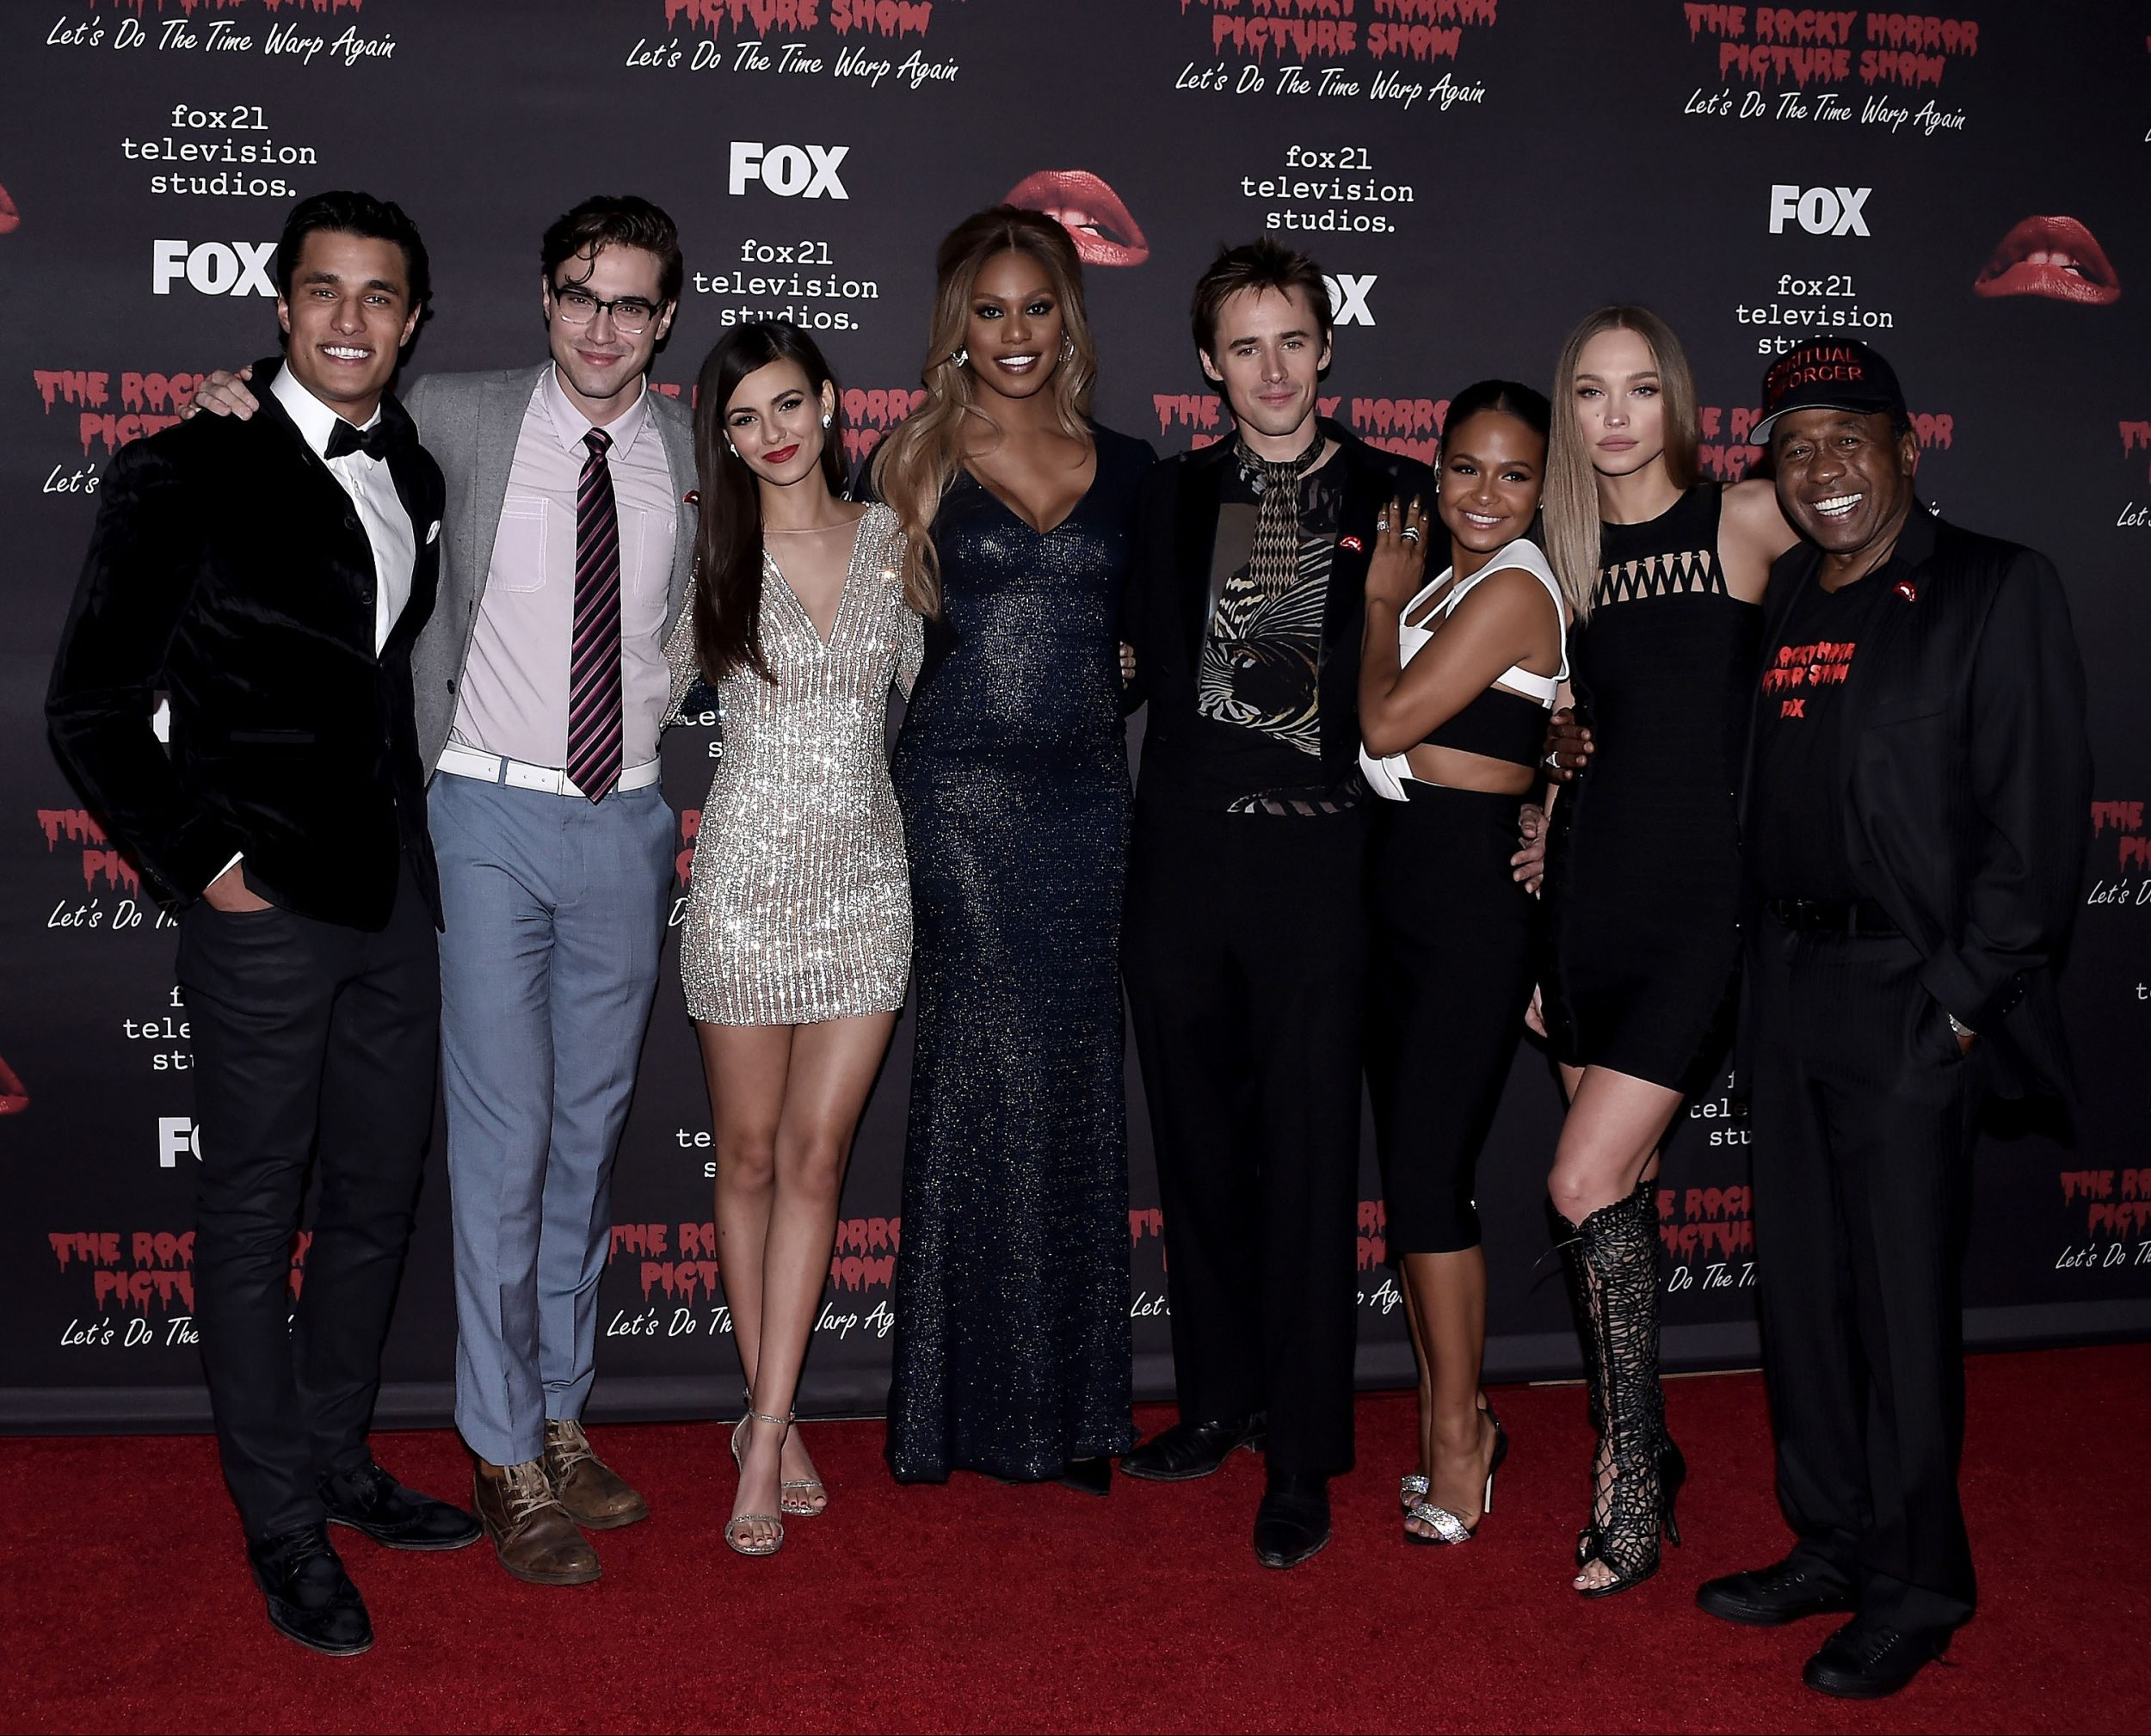 THE ROCKY HORROR PICTURE SHOW: Let's Do The Time Warp Again (and Transylvanians!): L-R: Cast members Staz Nair, Ryan McCartan, Victoria Justice, Laverne Cox, Reeve Carney, Christina Milian, Ivy Levan and Ben Vereen arrive at THE ROCKY HORROR PICTURE SHOW: Let's Do The Time Warp Again (and Transylvanians!) premiere party red carpet at The Roxy on Thursday, Oct. 13, in Los Angeles, CA. THE ROCKY HORROR PICTURE SHOW: Let's Do The Time Warp Again (And Transylvanians!) premieres Thursday, Oct. 20 (8:00-10:00 PM ET/PT) on FOX. © 2016 FOX BROADCASTING CR: Scott Kirkland/FOX